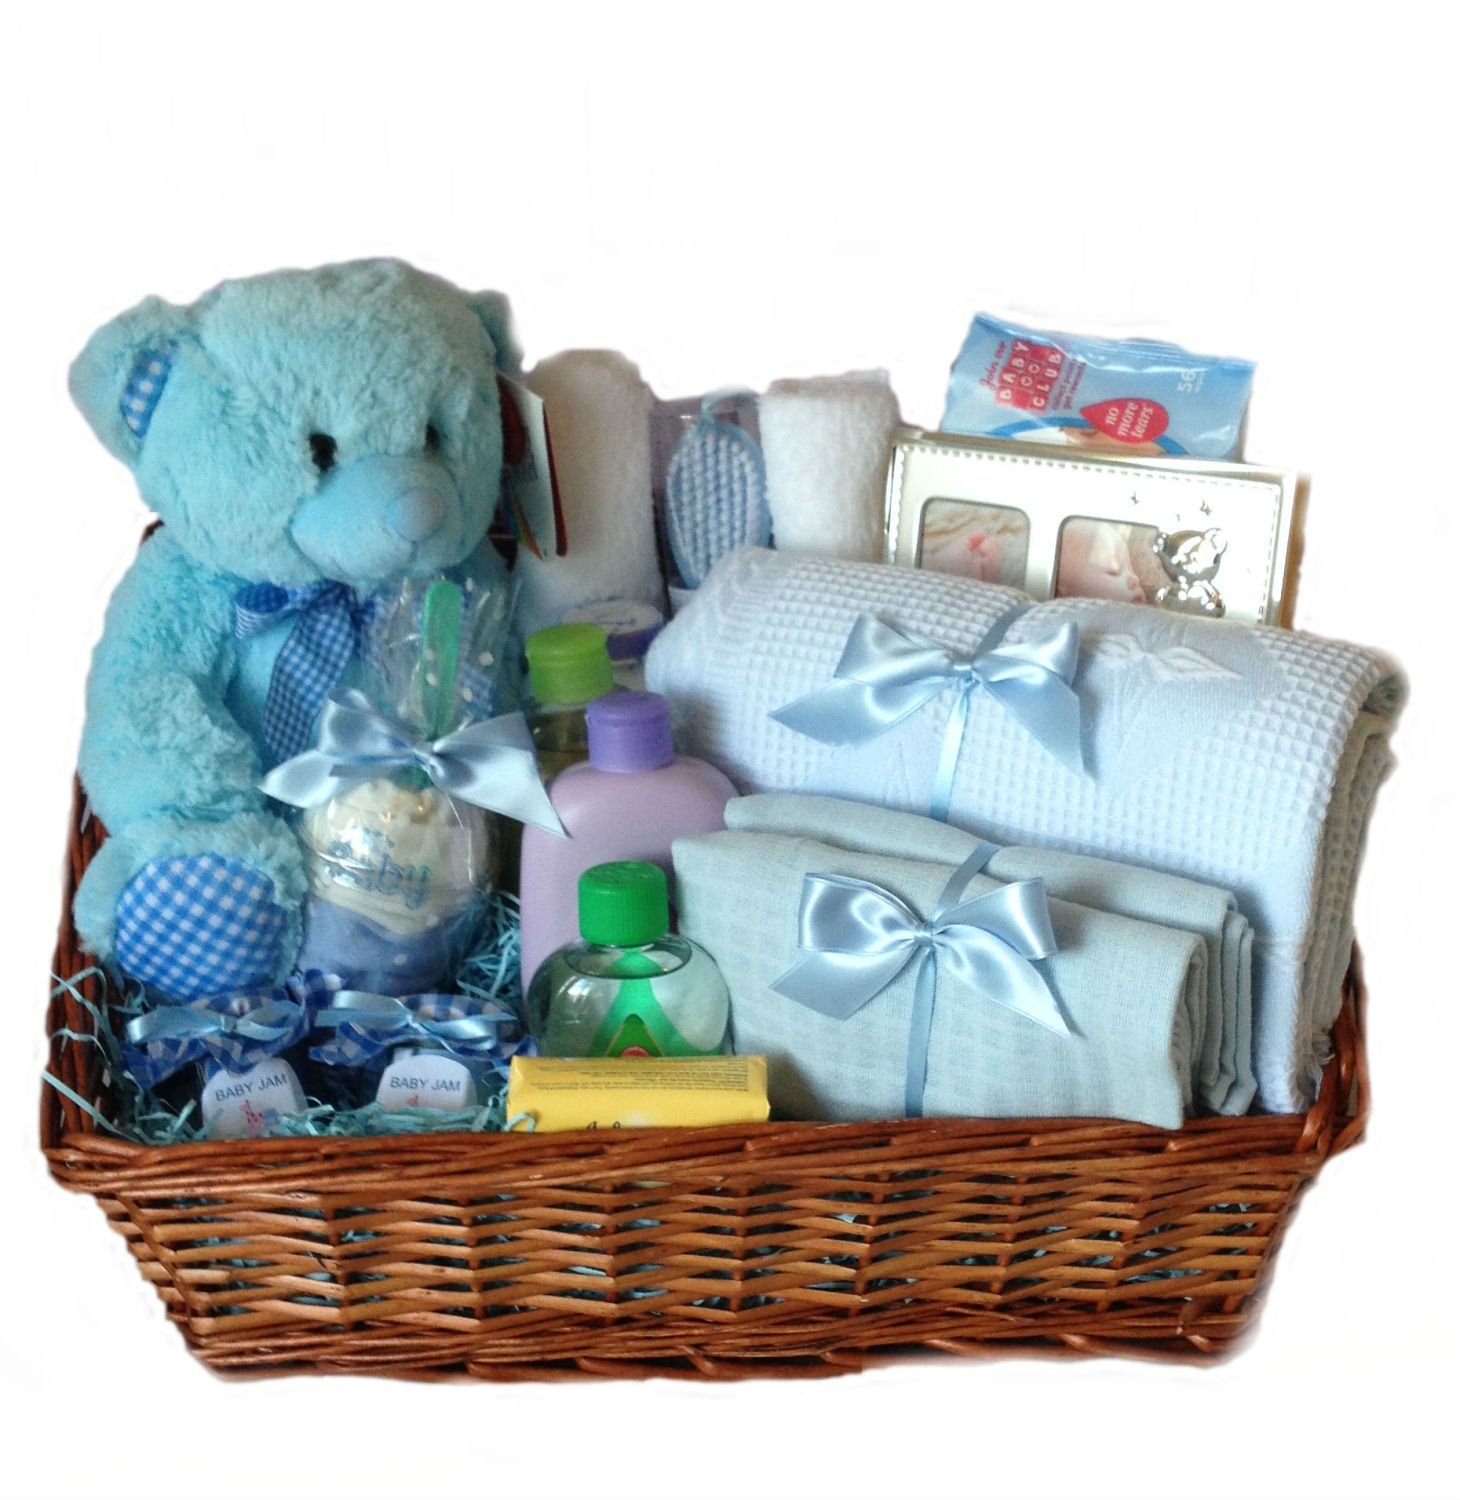 Baby hamper new baby gift baby boy baby gift napy cake and baby baby hamper new baby gift baby boy baby gift napy cake and baby hampers delivered in ireland negle Choice Image